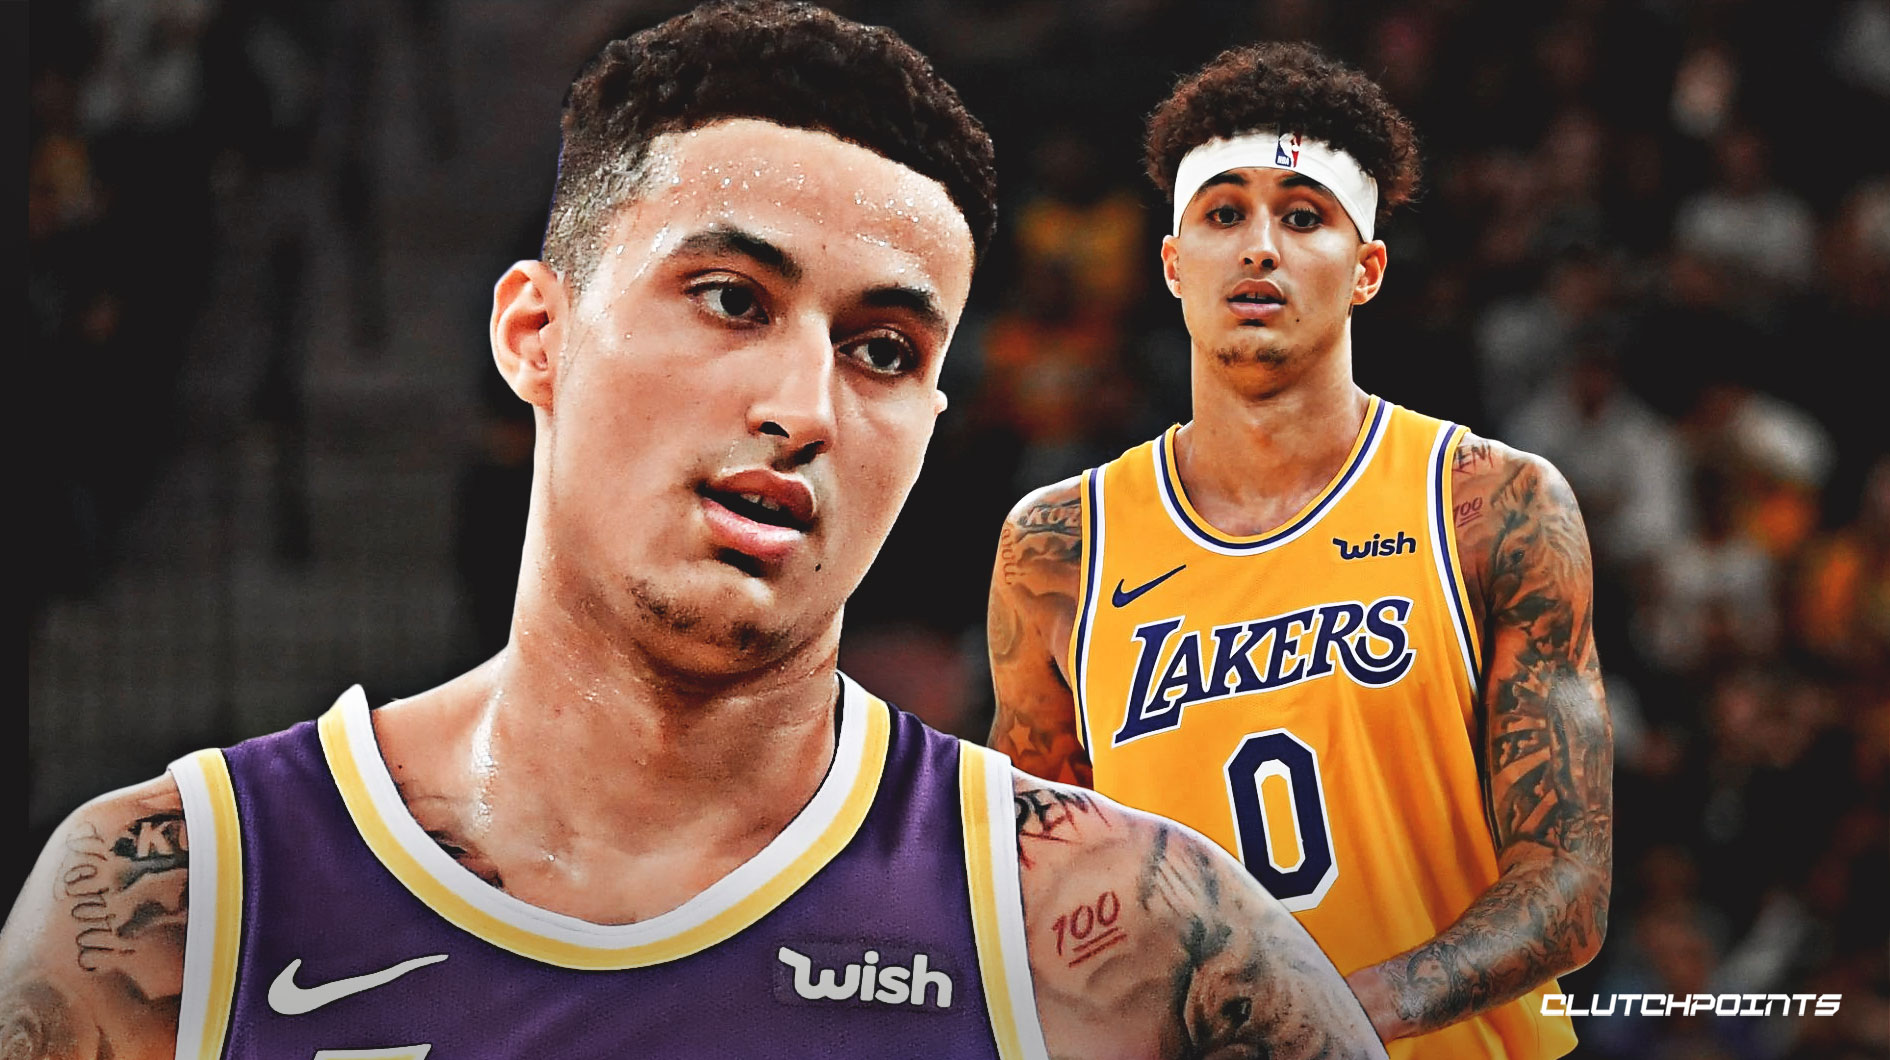 Lakers' Kyle Kuzma Generating Interest On The Trade Market